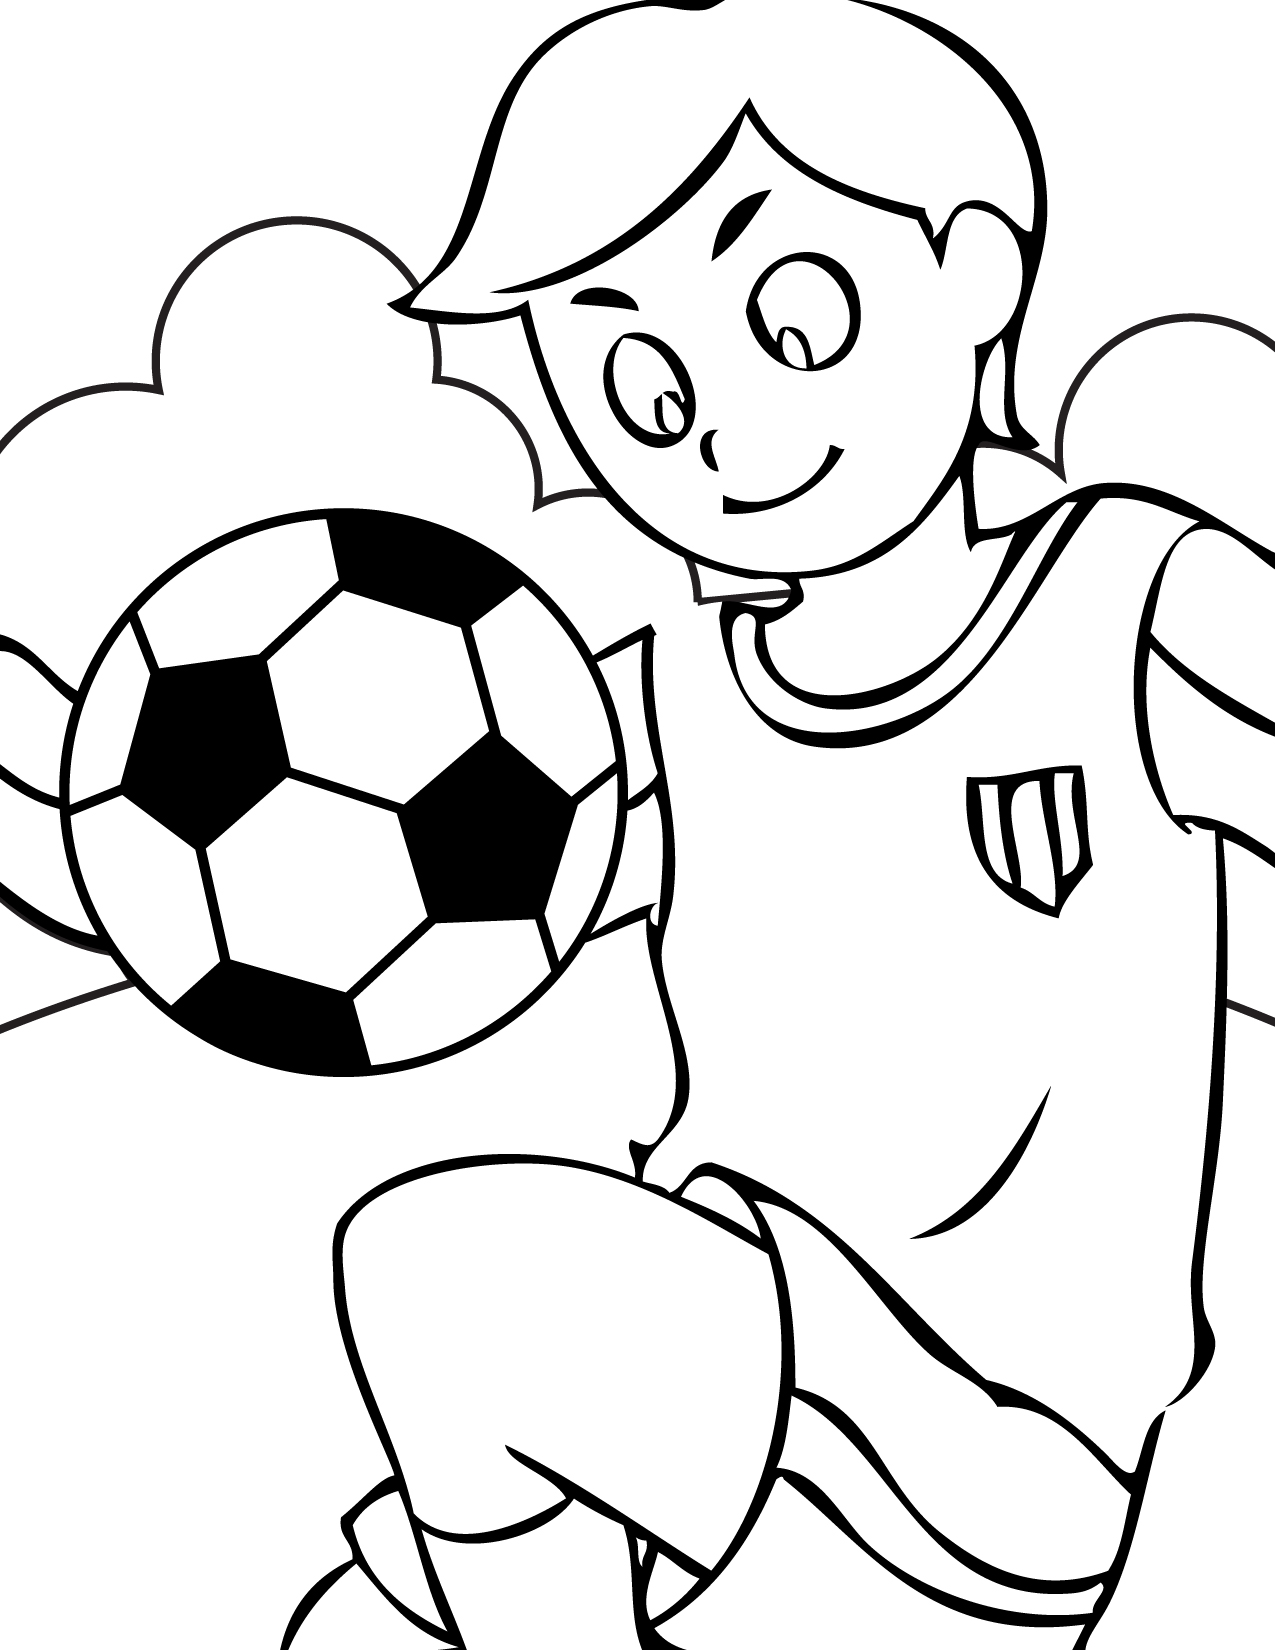 sports coloring pages for kids - photo#2